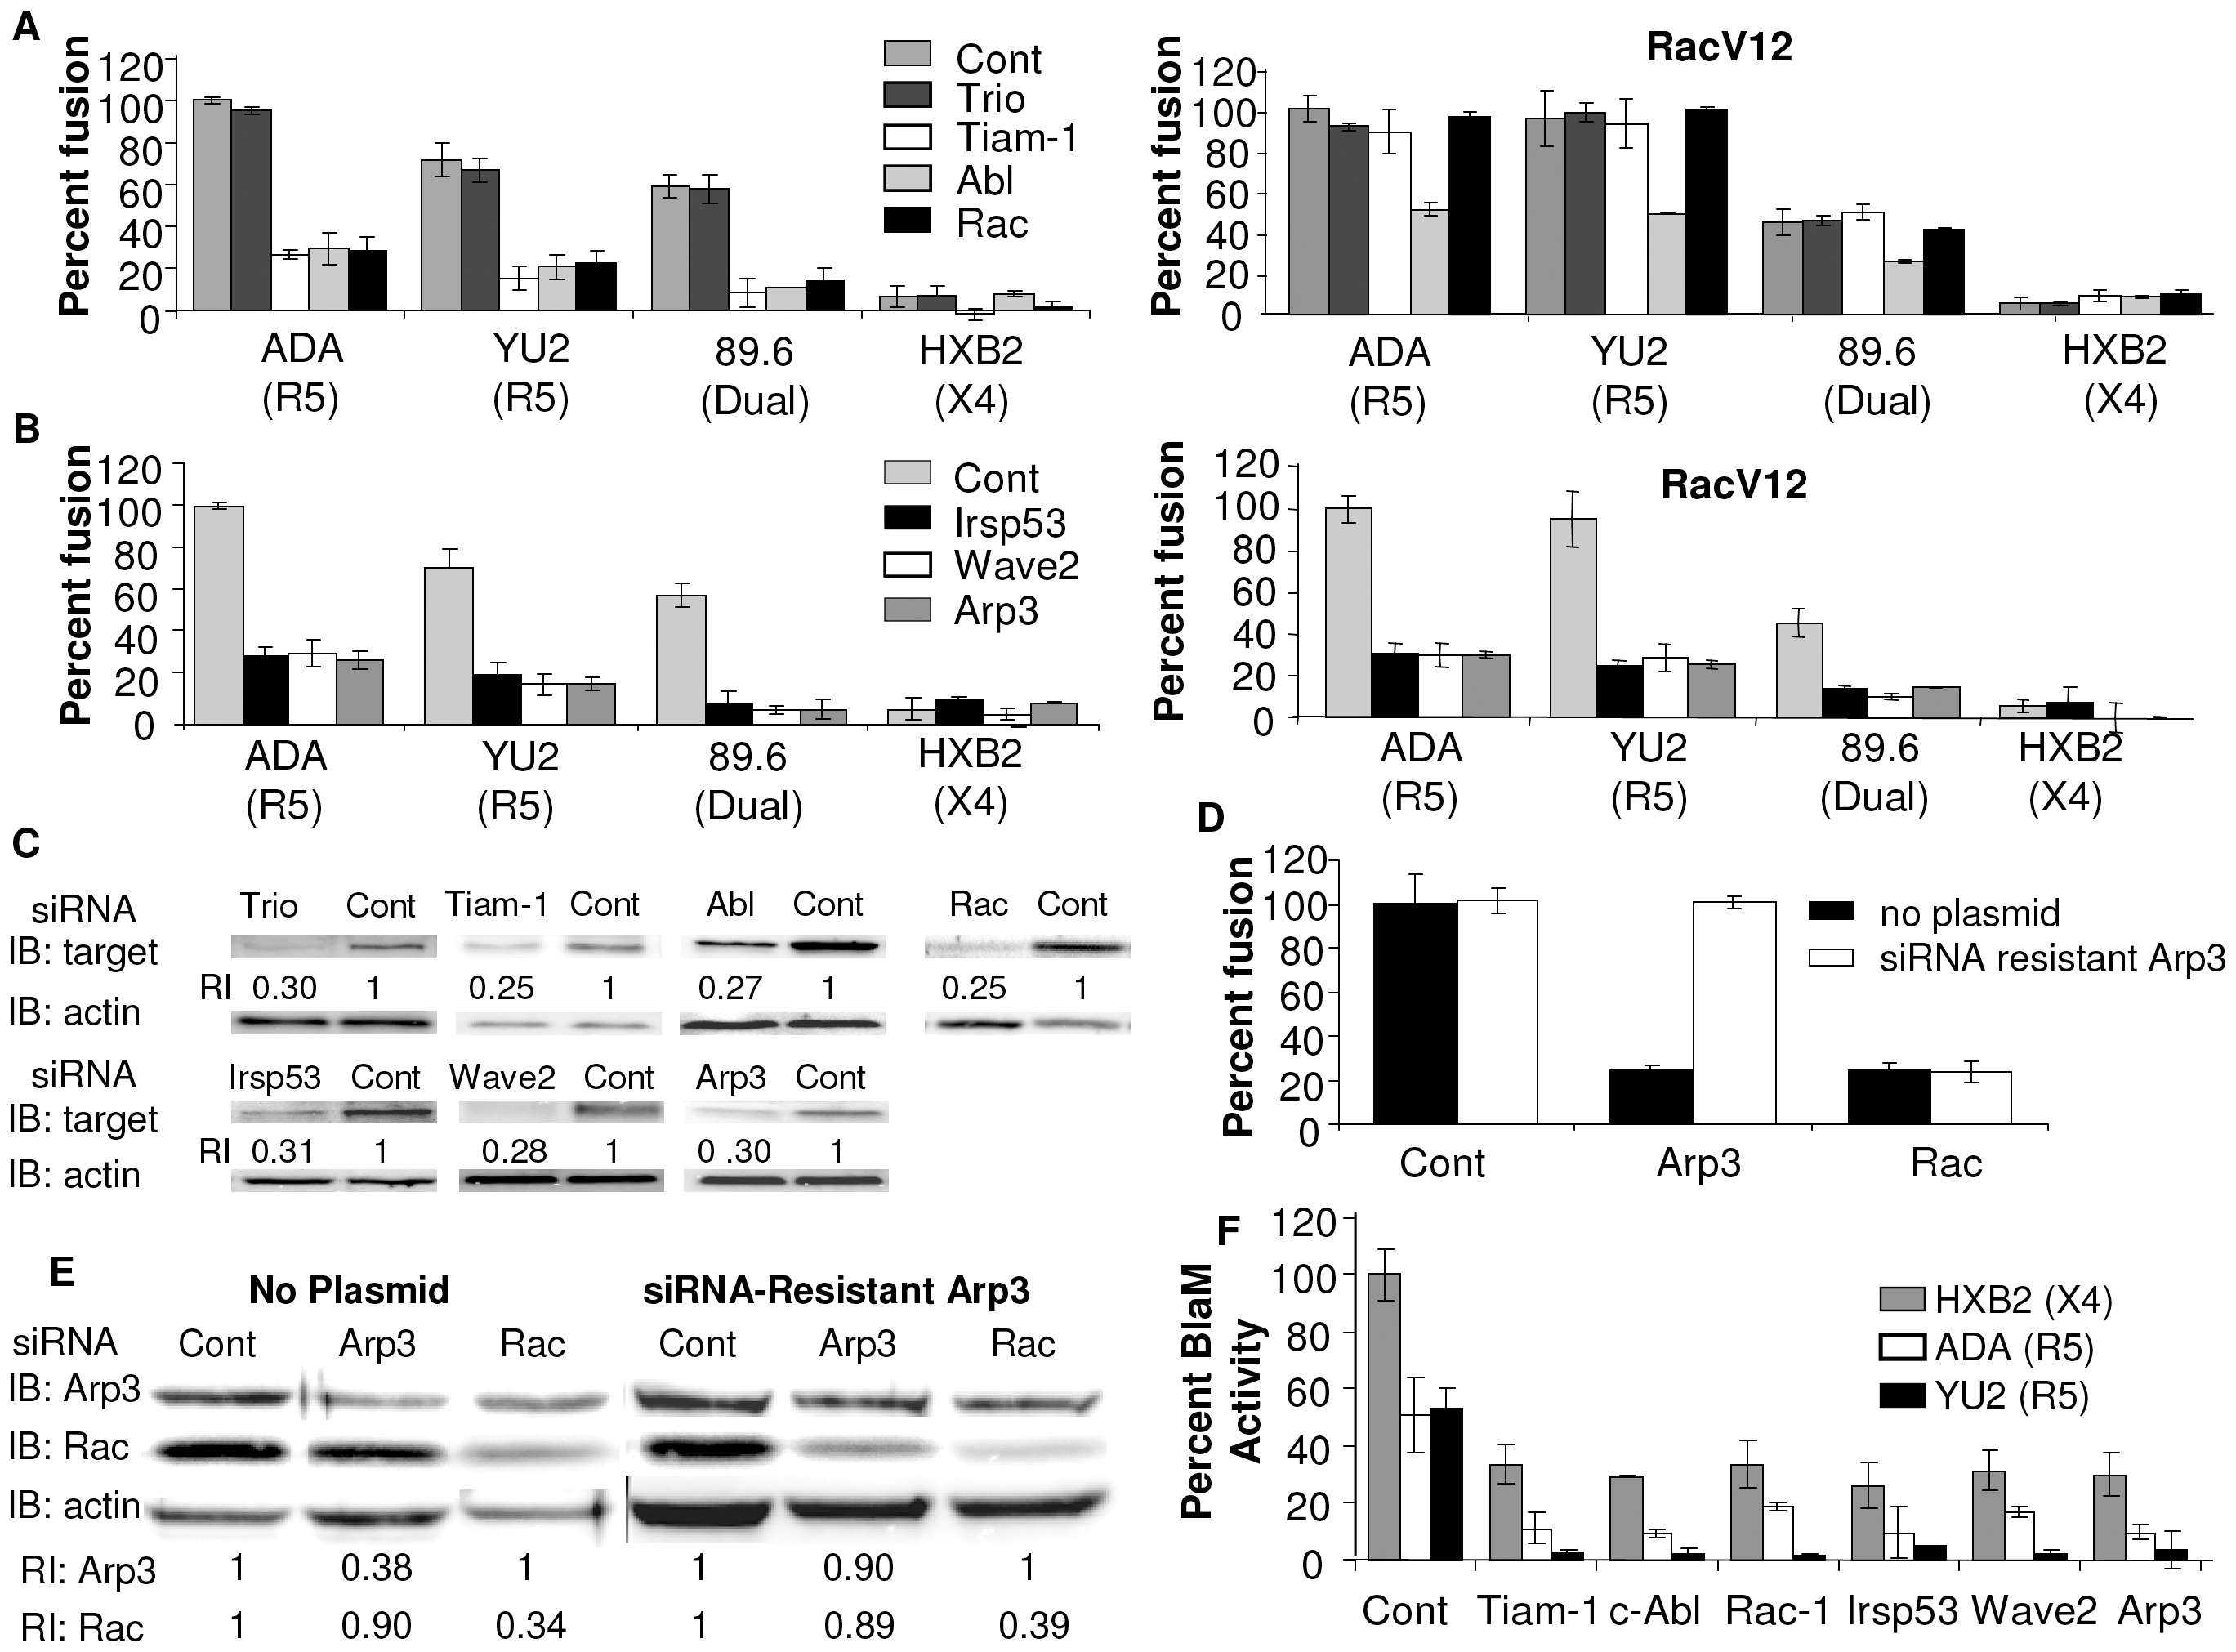 Down regulation of Wave2 signaling complex with siRNA reduces HIV-1 Env-mediated cell-cell fusion and virus-cell fusion.